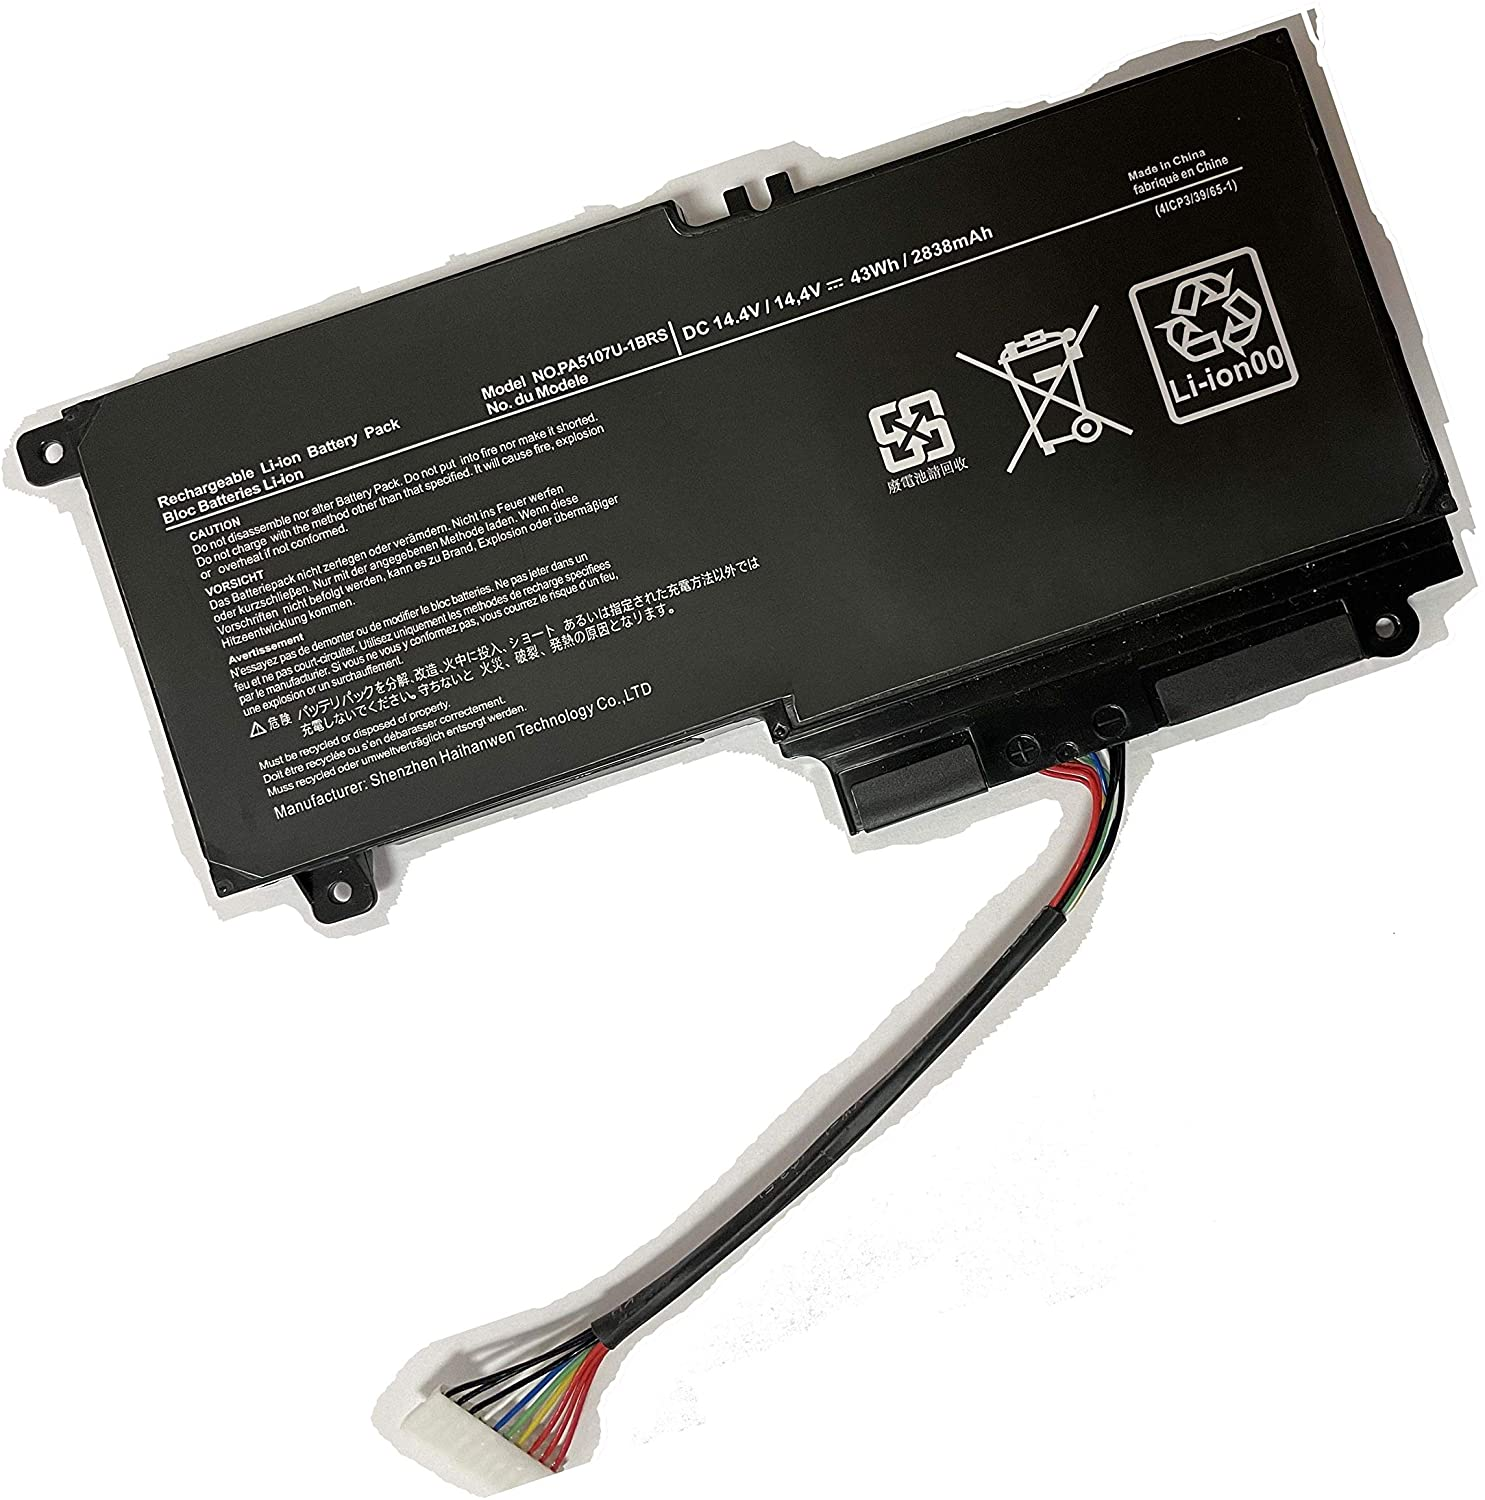 New Shipping Free Powerforlaptop Laptop Battery Compatible S55- Satellite Max 75% OFF with S55